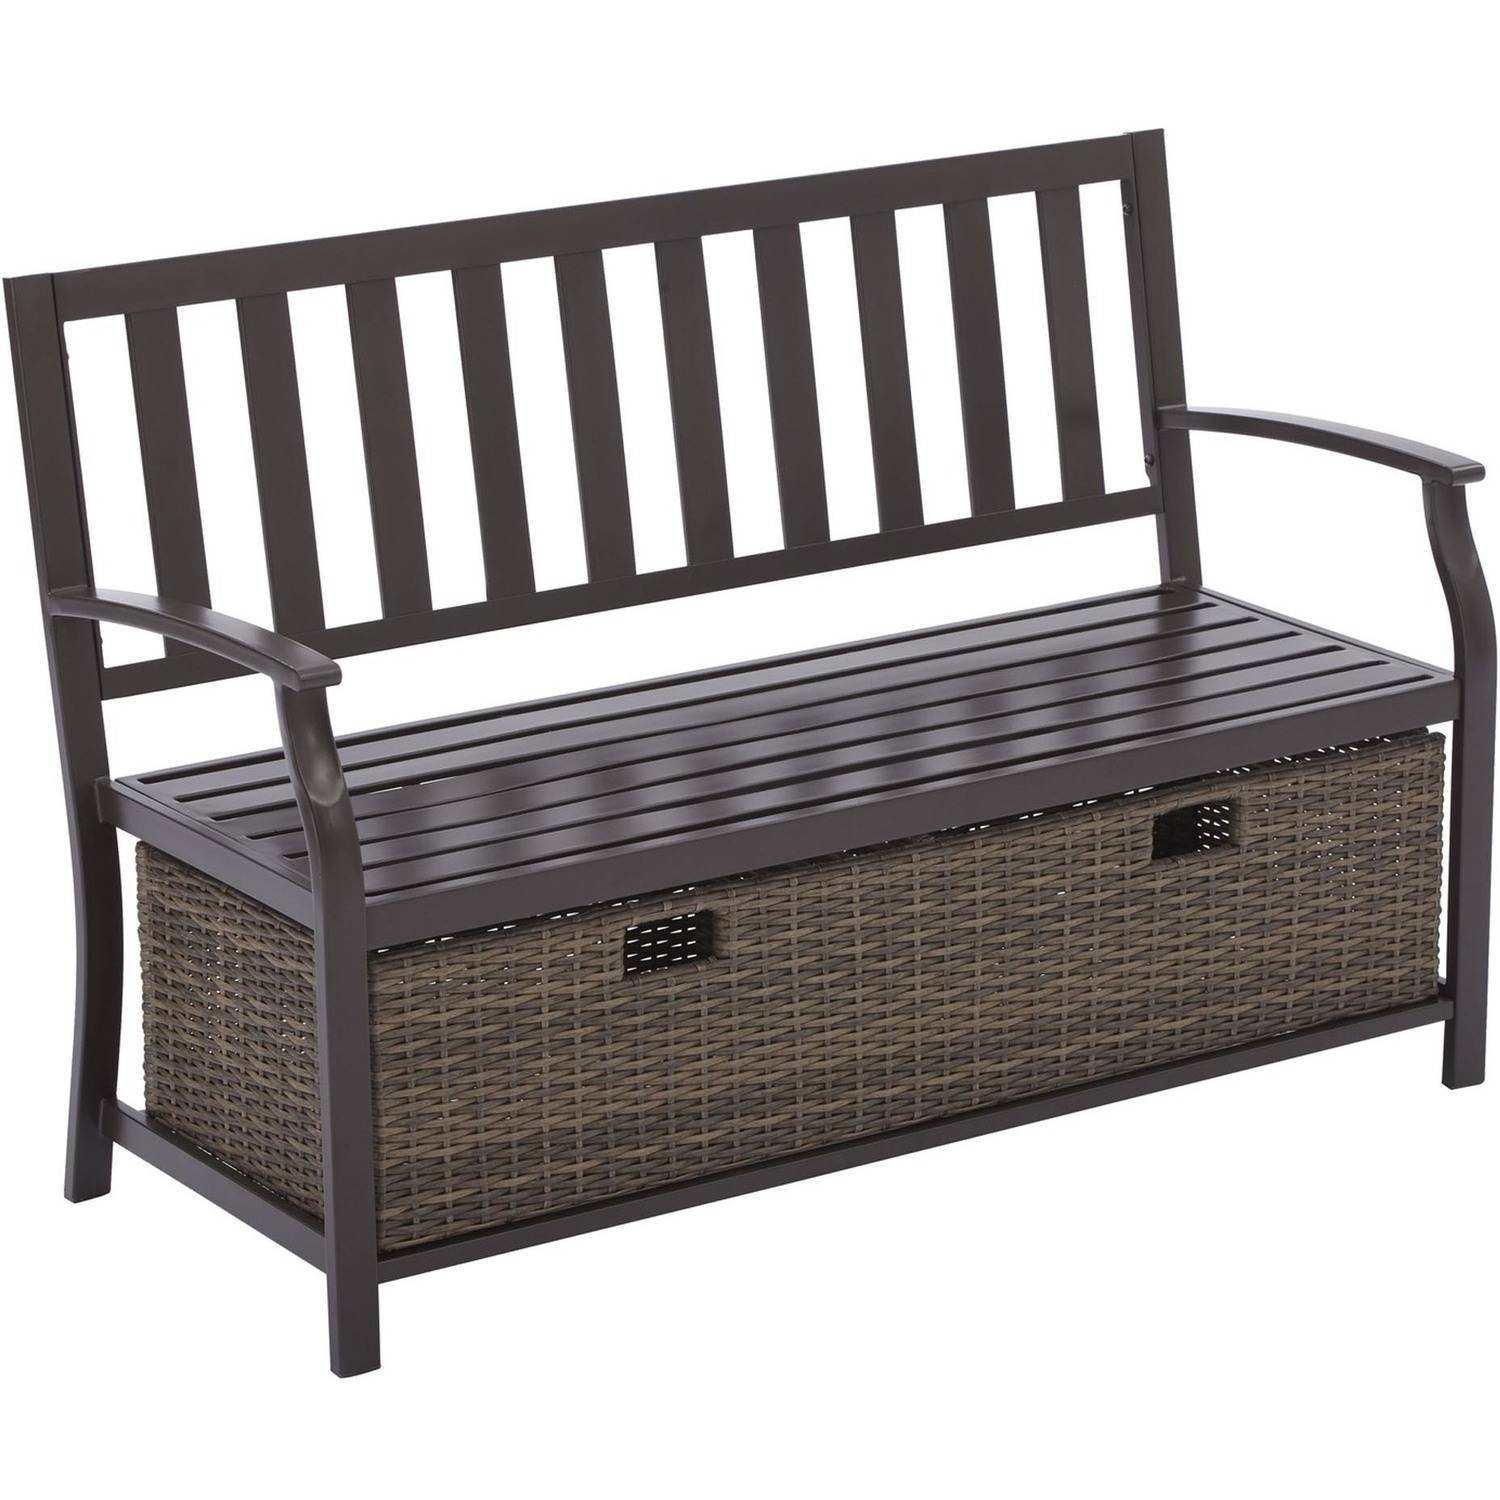 Better Homes and Gardens Camrose Farmhouse Bench with Wicker Storage Box